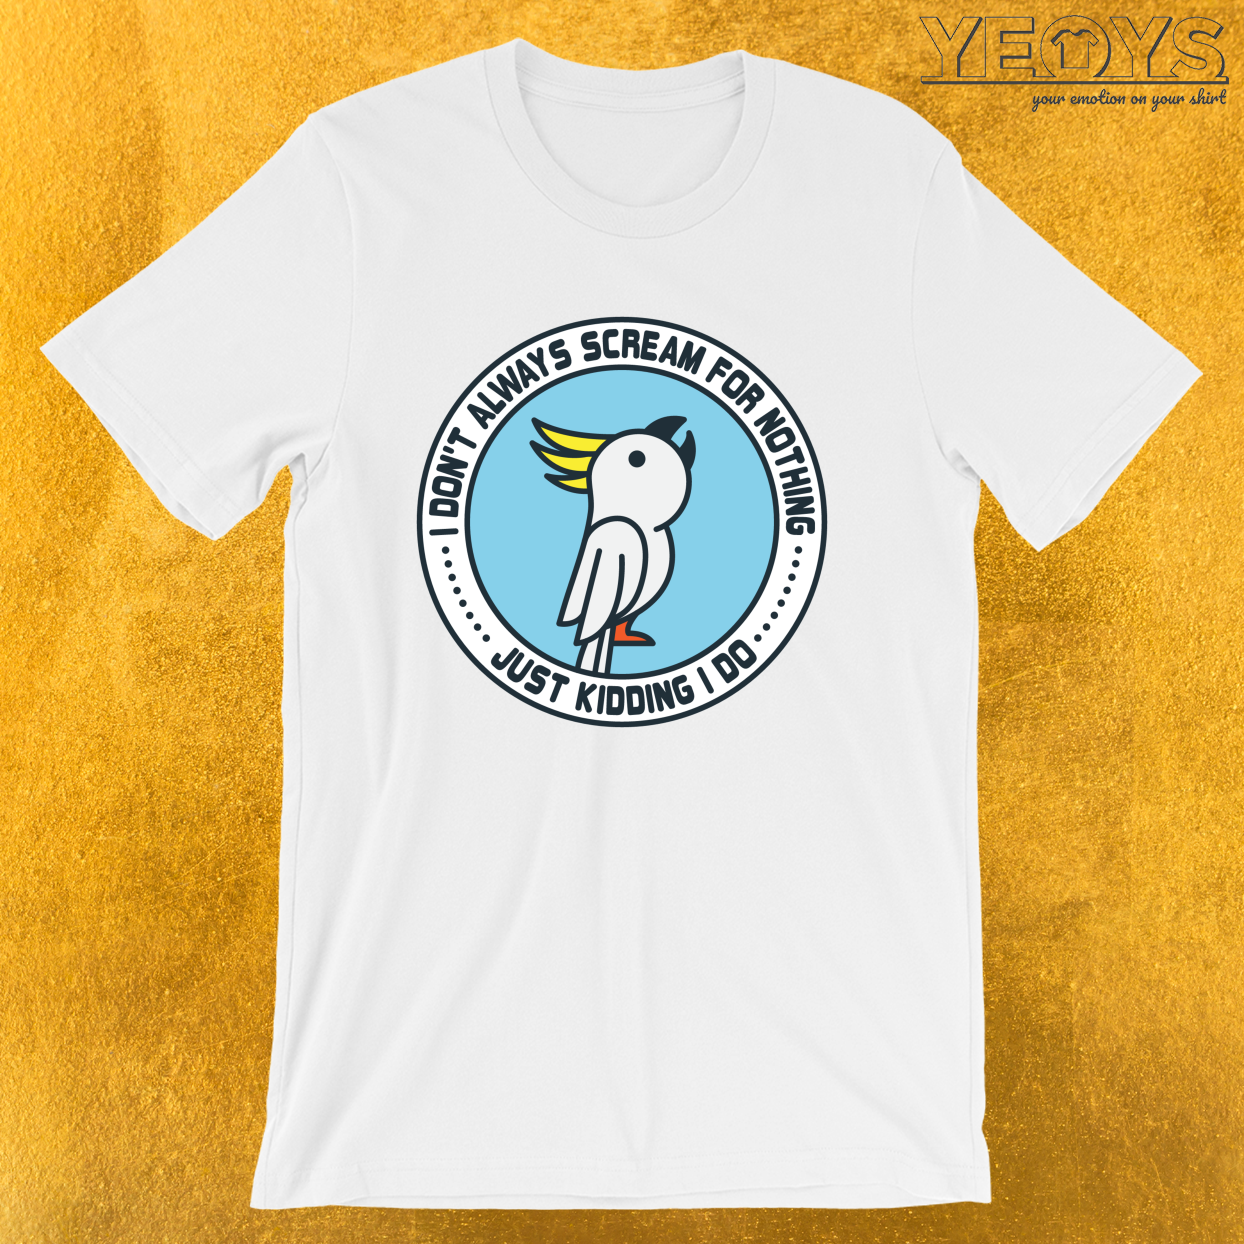 Always Scream For Nothing Just Kidding I Do – Parrot Cockatoo Tee